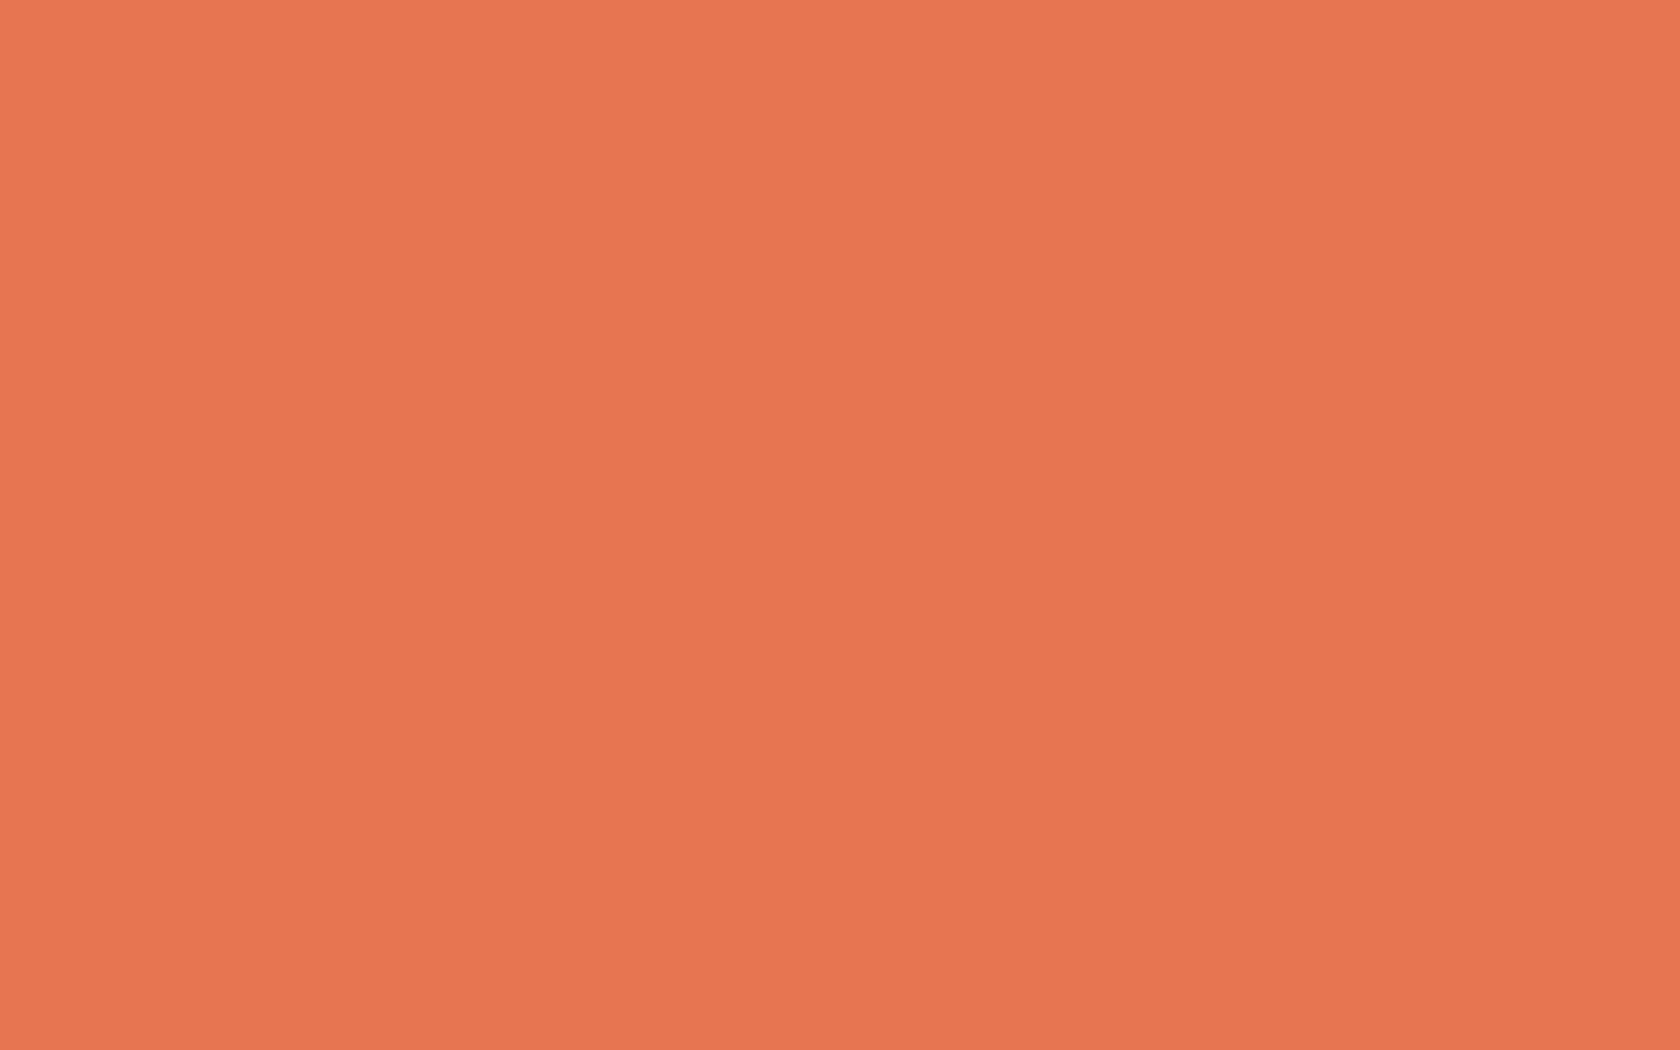 1680x1050 Light Red Ochre Solid Color Background